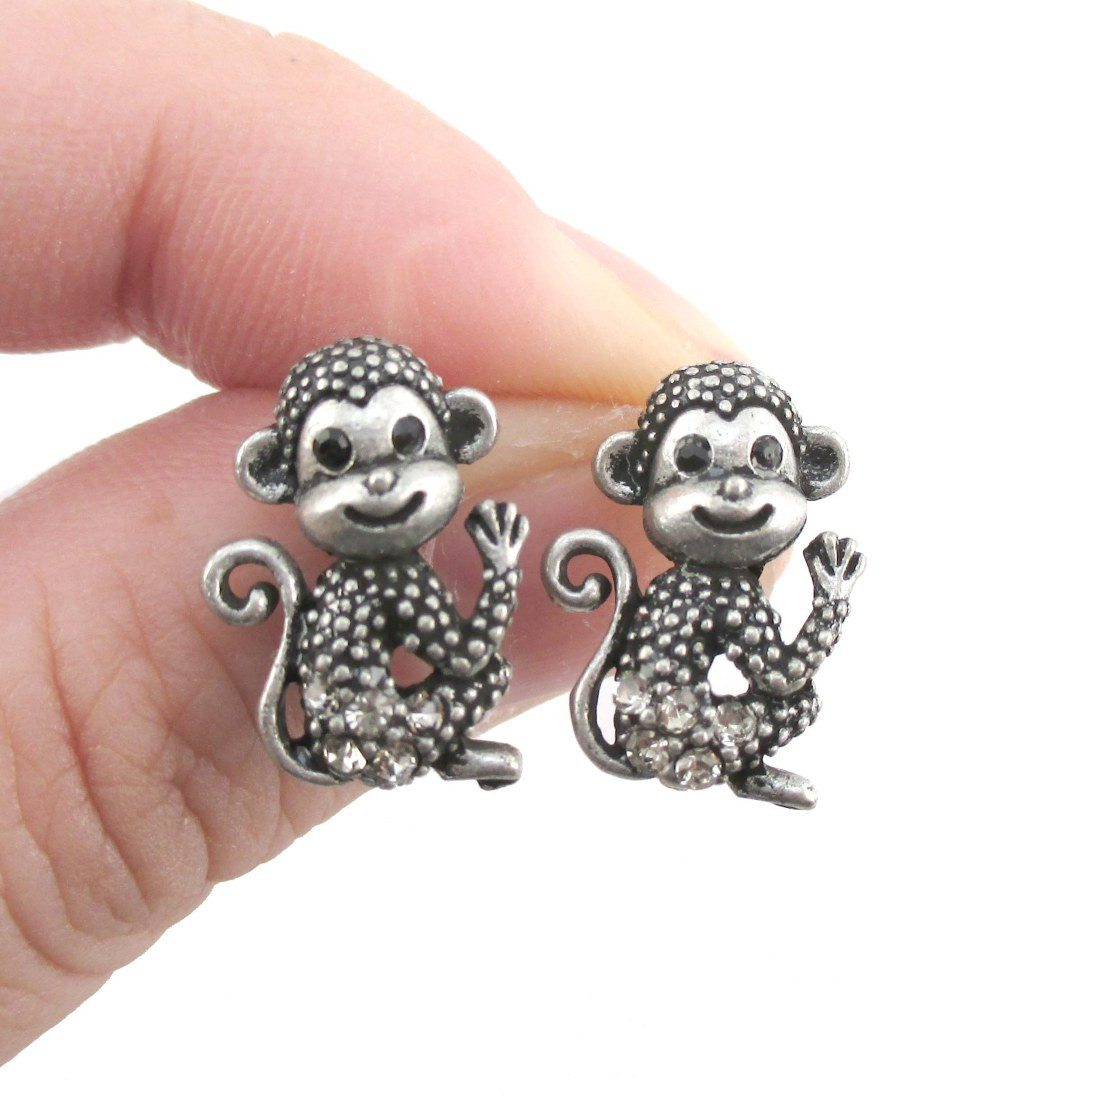 Baby Monkey Shaped Rhinestone Stud Earrings in Silver